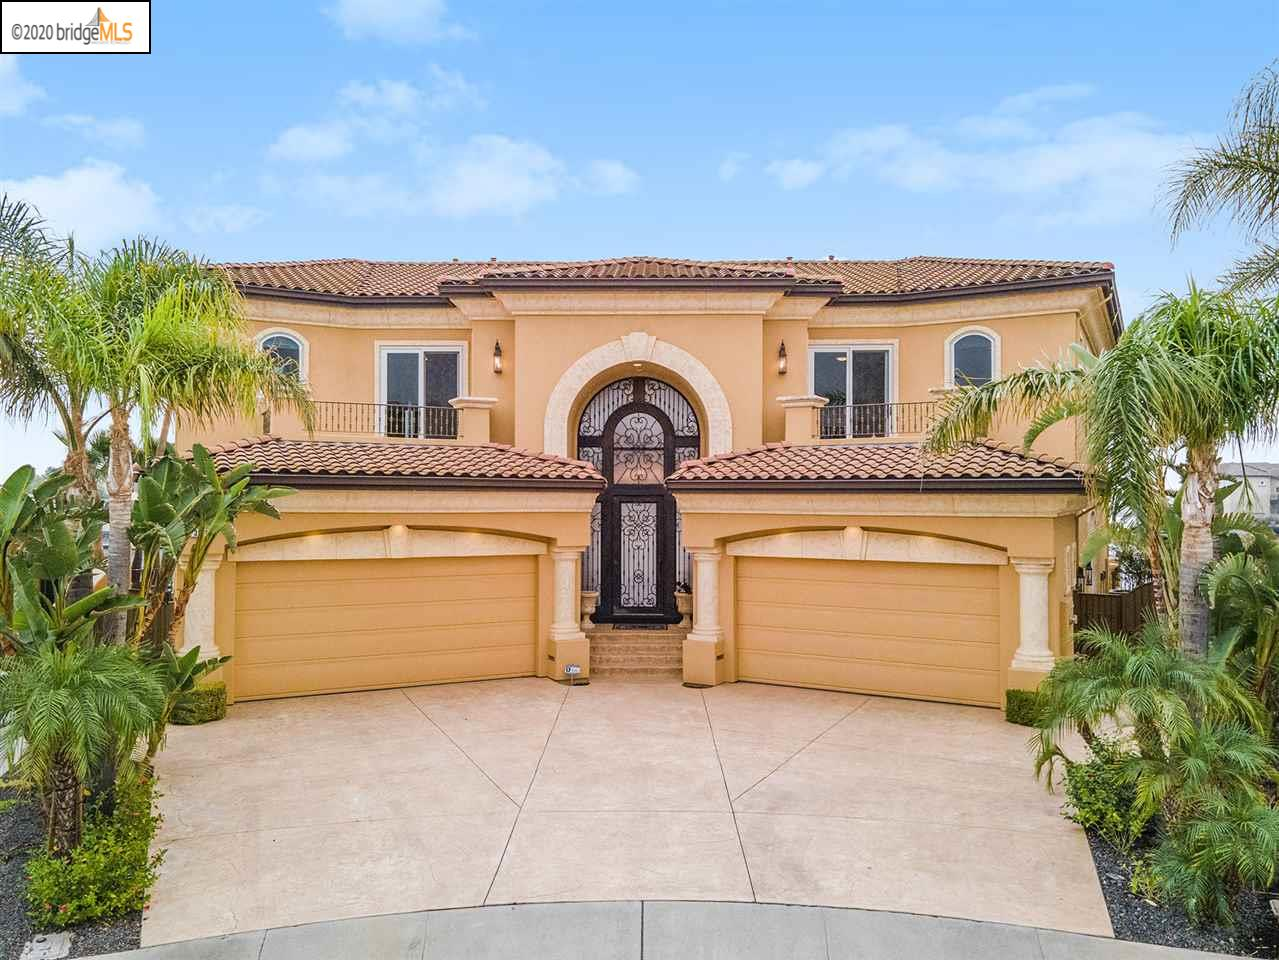 3960 Lighthouse Pl, DISCOVERY BAY, CA 94505